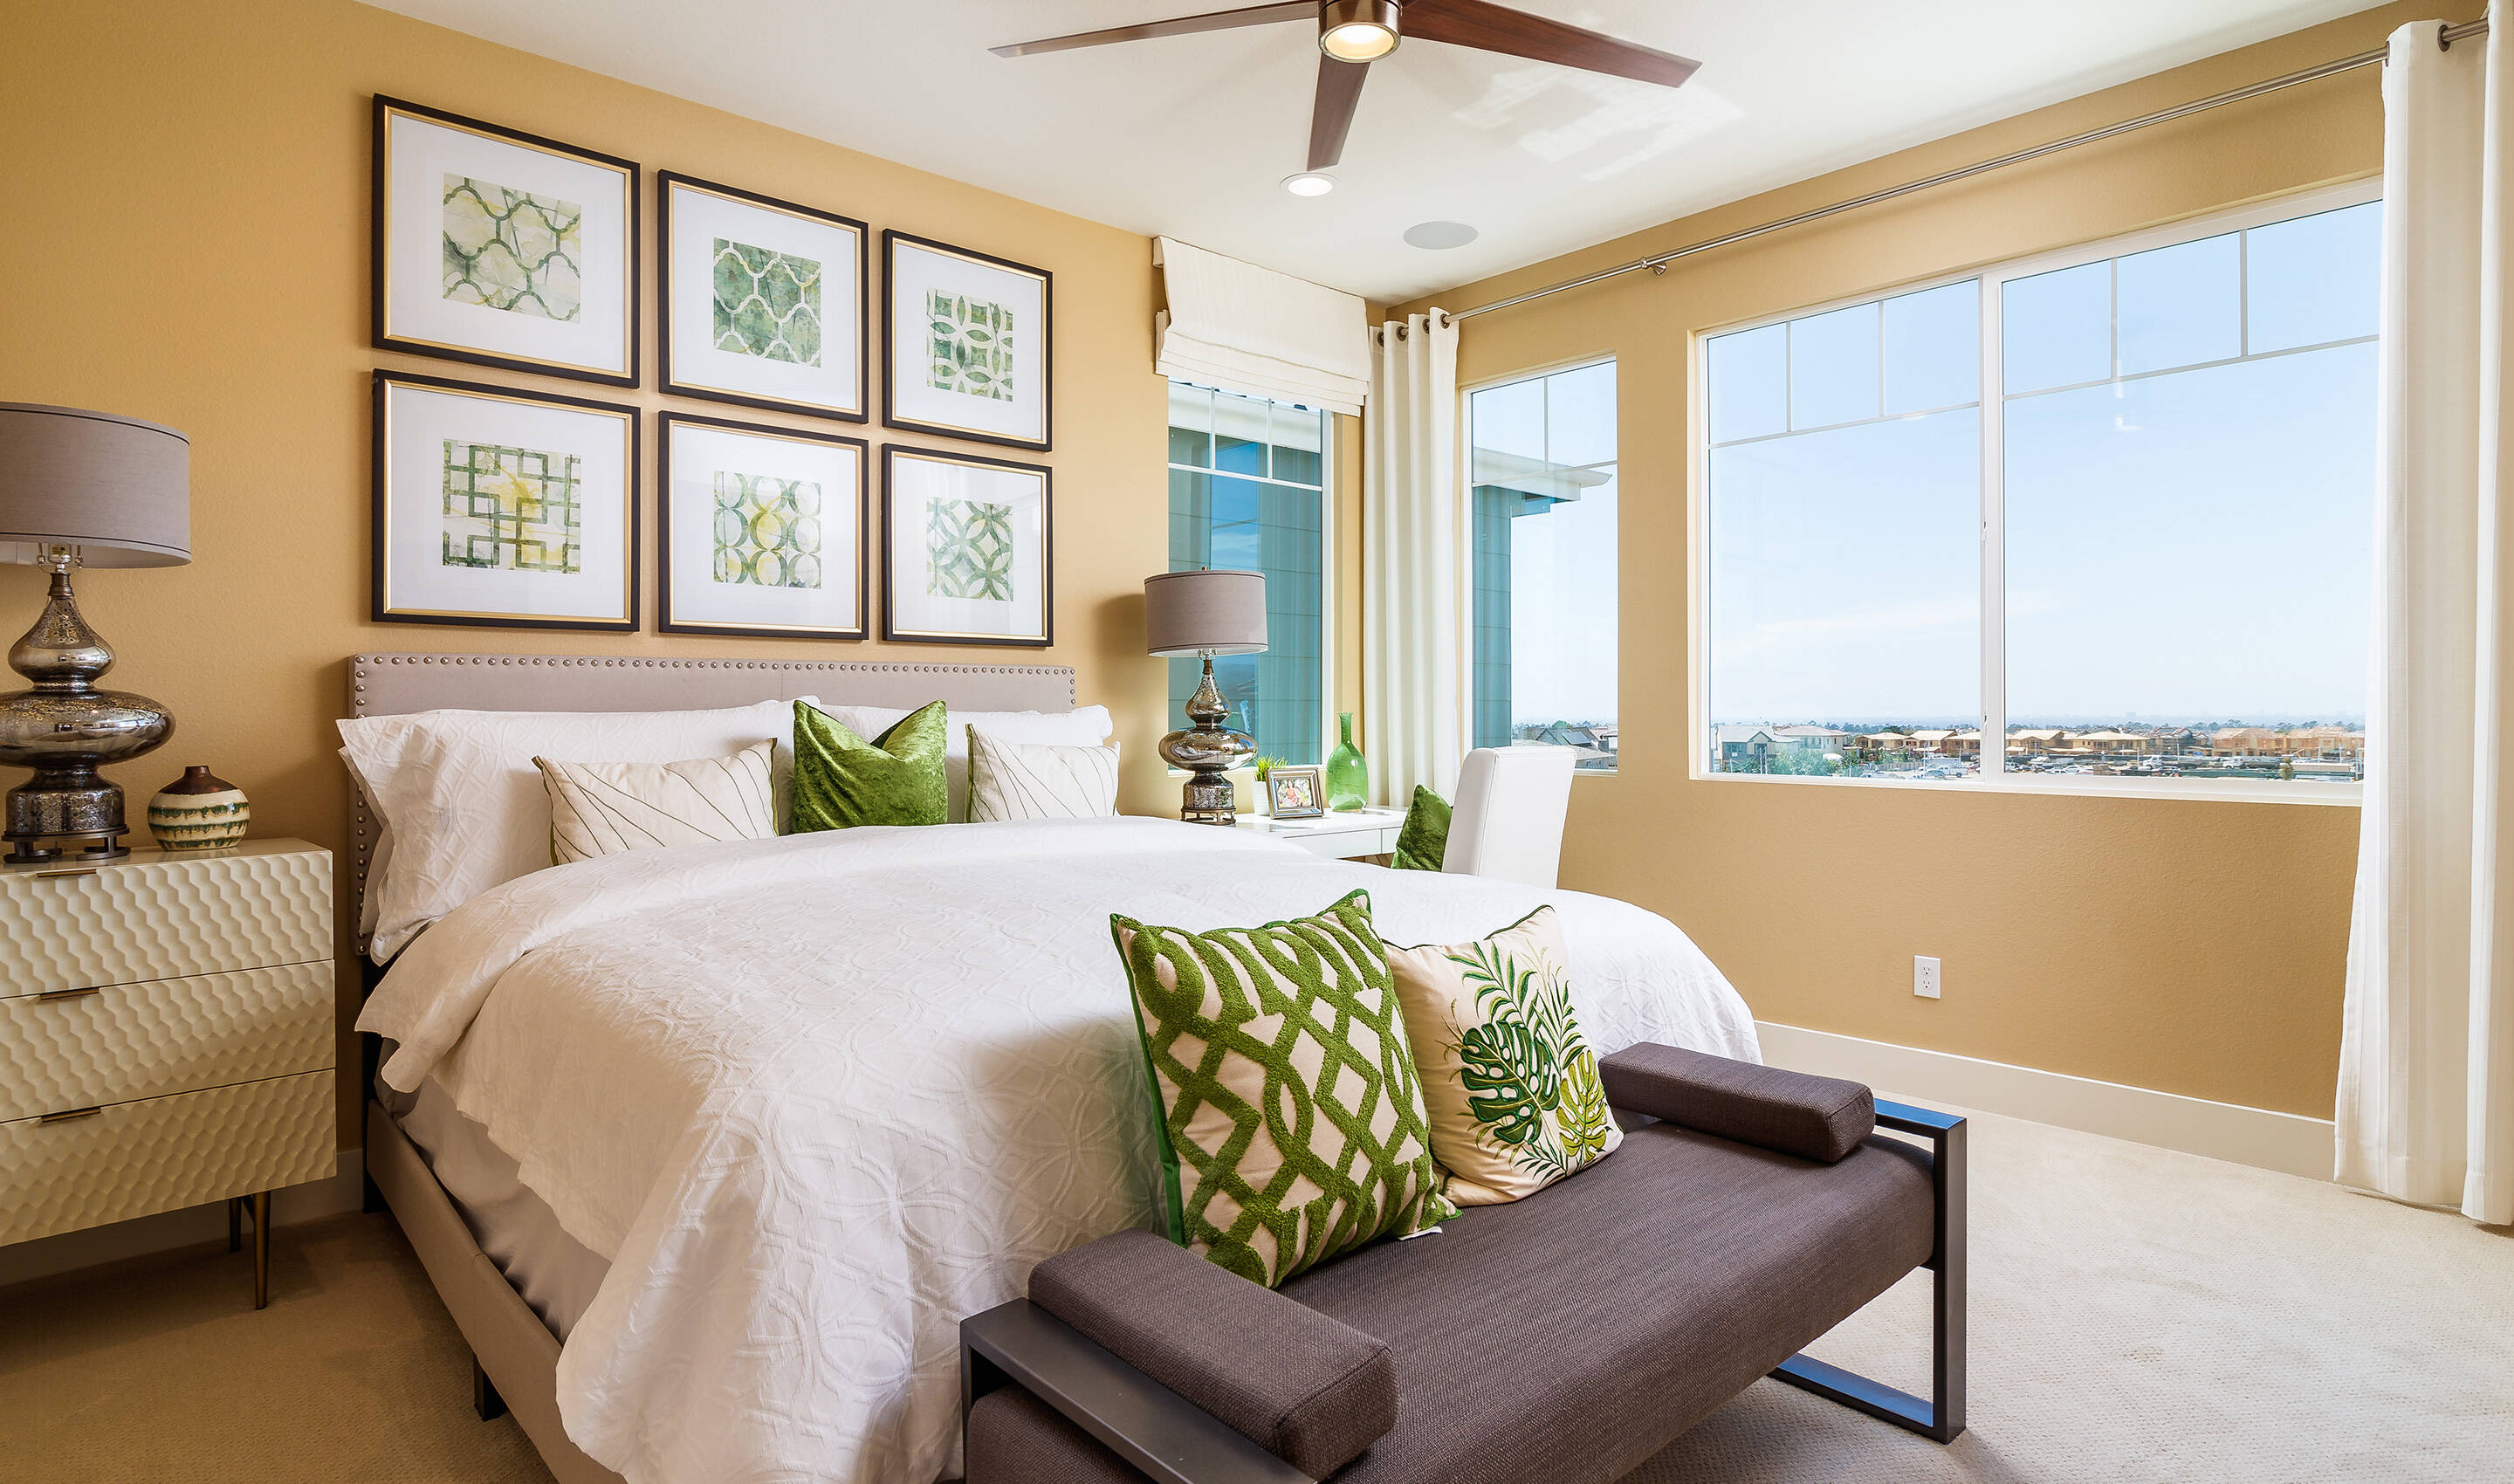 metropolis-owners-suite-deco-at-cadence-park-new-homes-irvine-ca